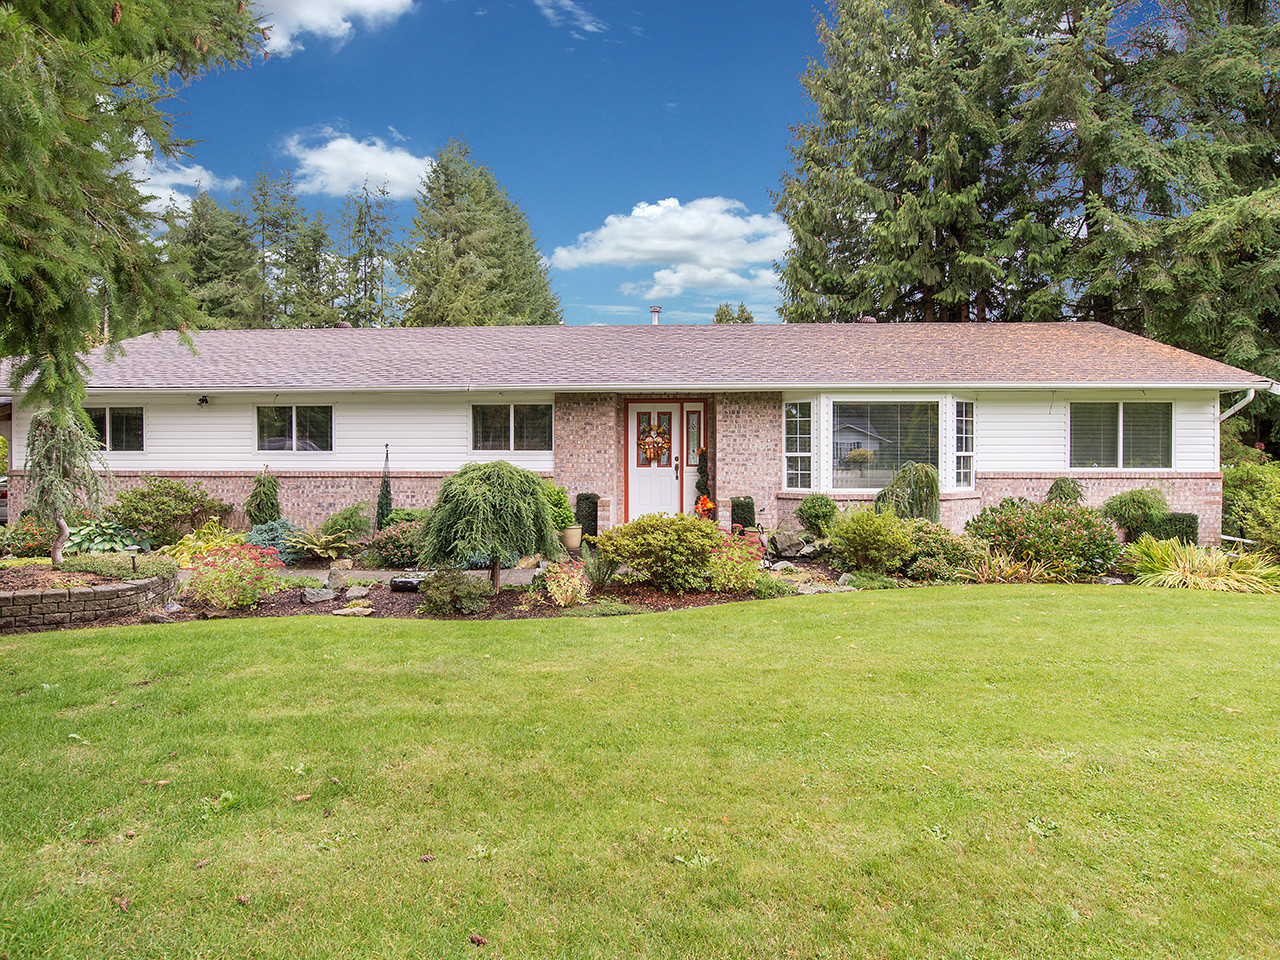 24040 49A Ave for MLS